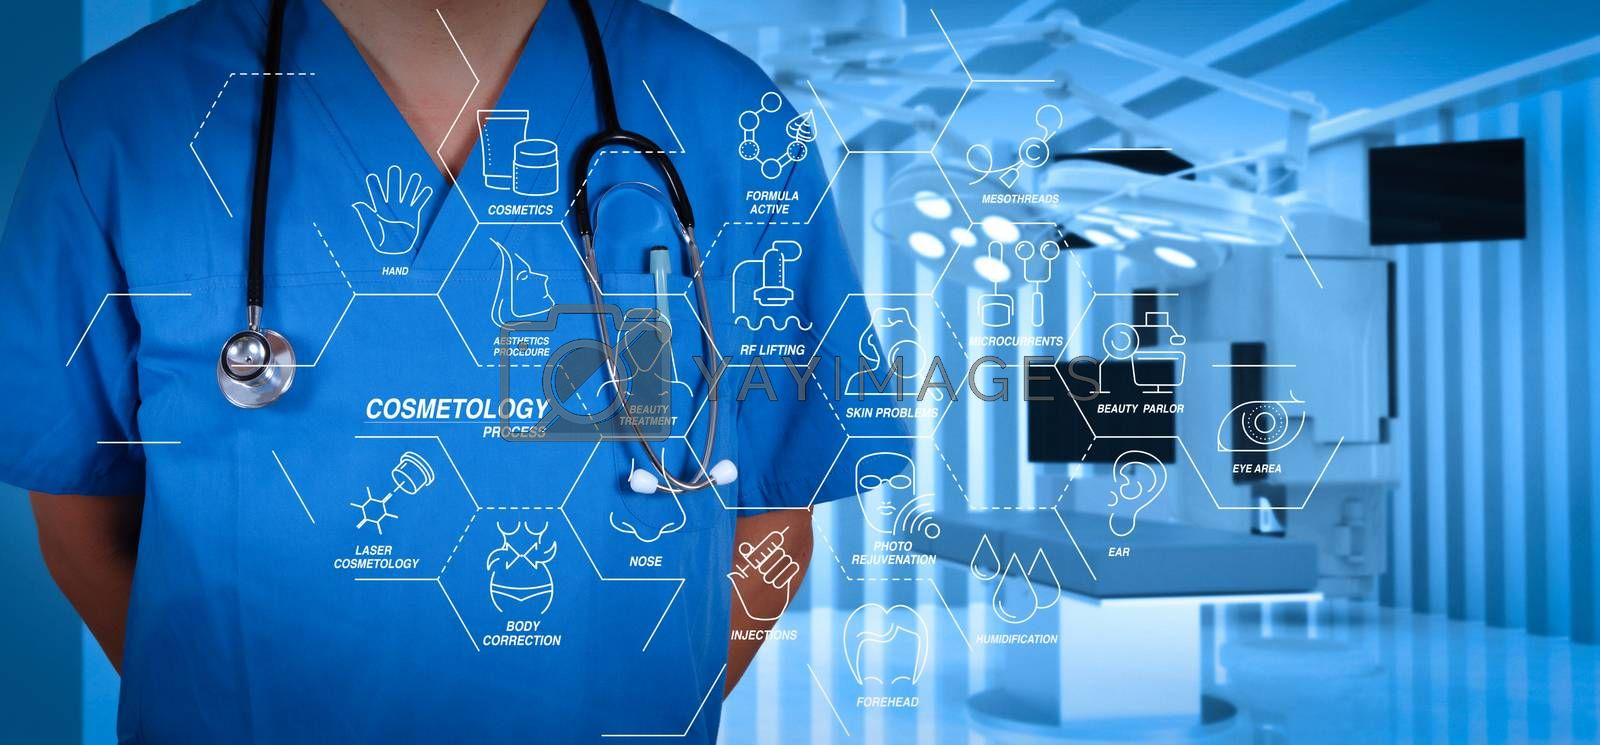 Royalty free image of success smart medical doctor by everythingpossible